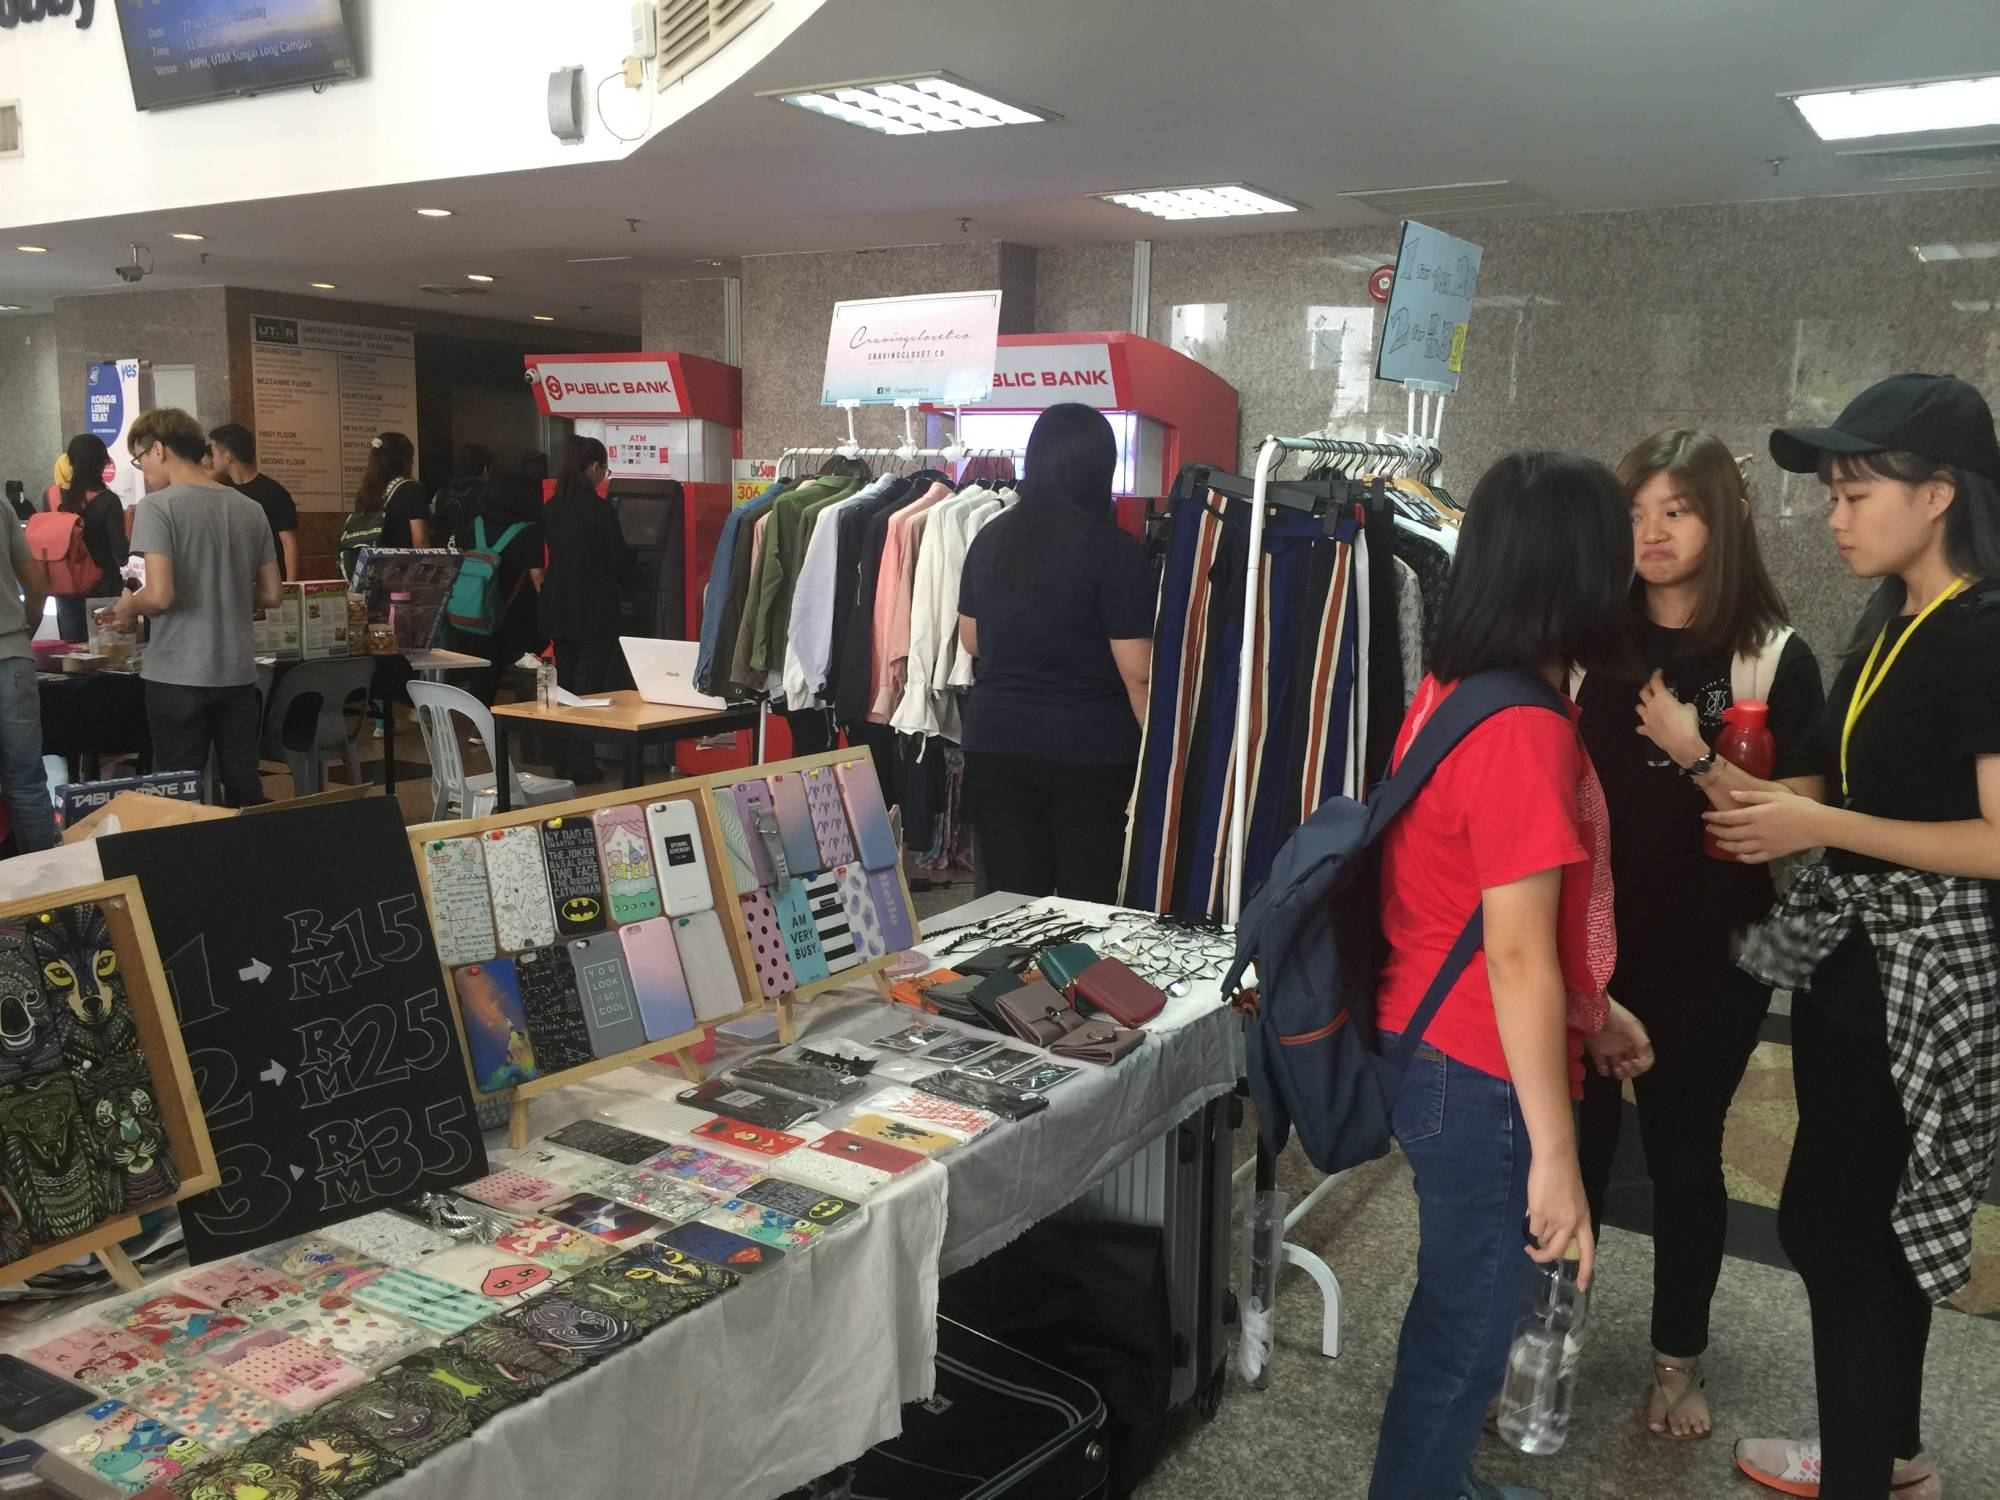 Flea Market on 11 to 12 July 2017 at UTAR Sungai Long Campus